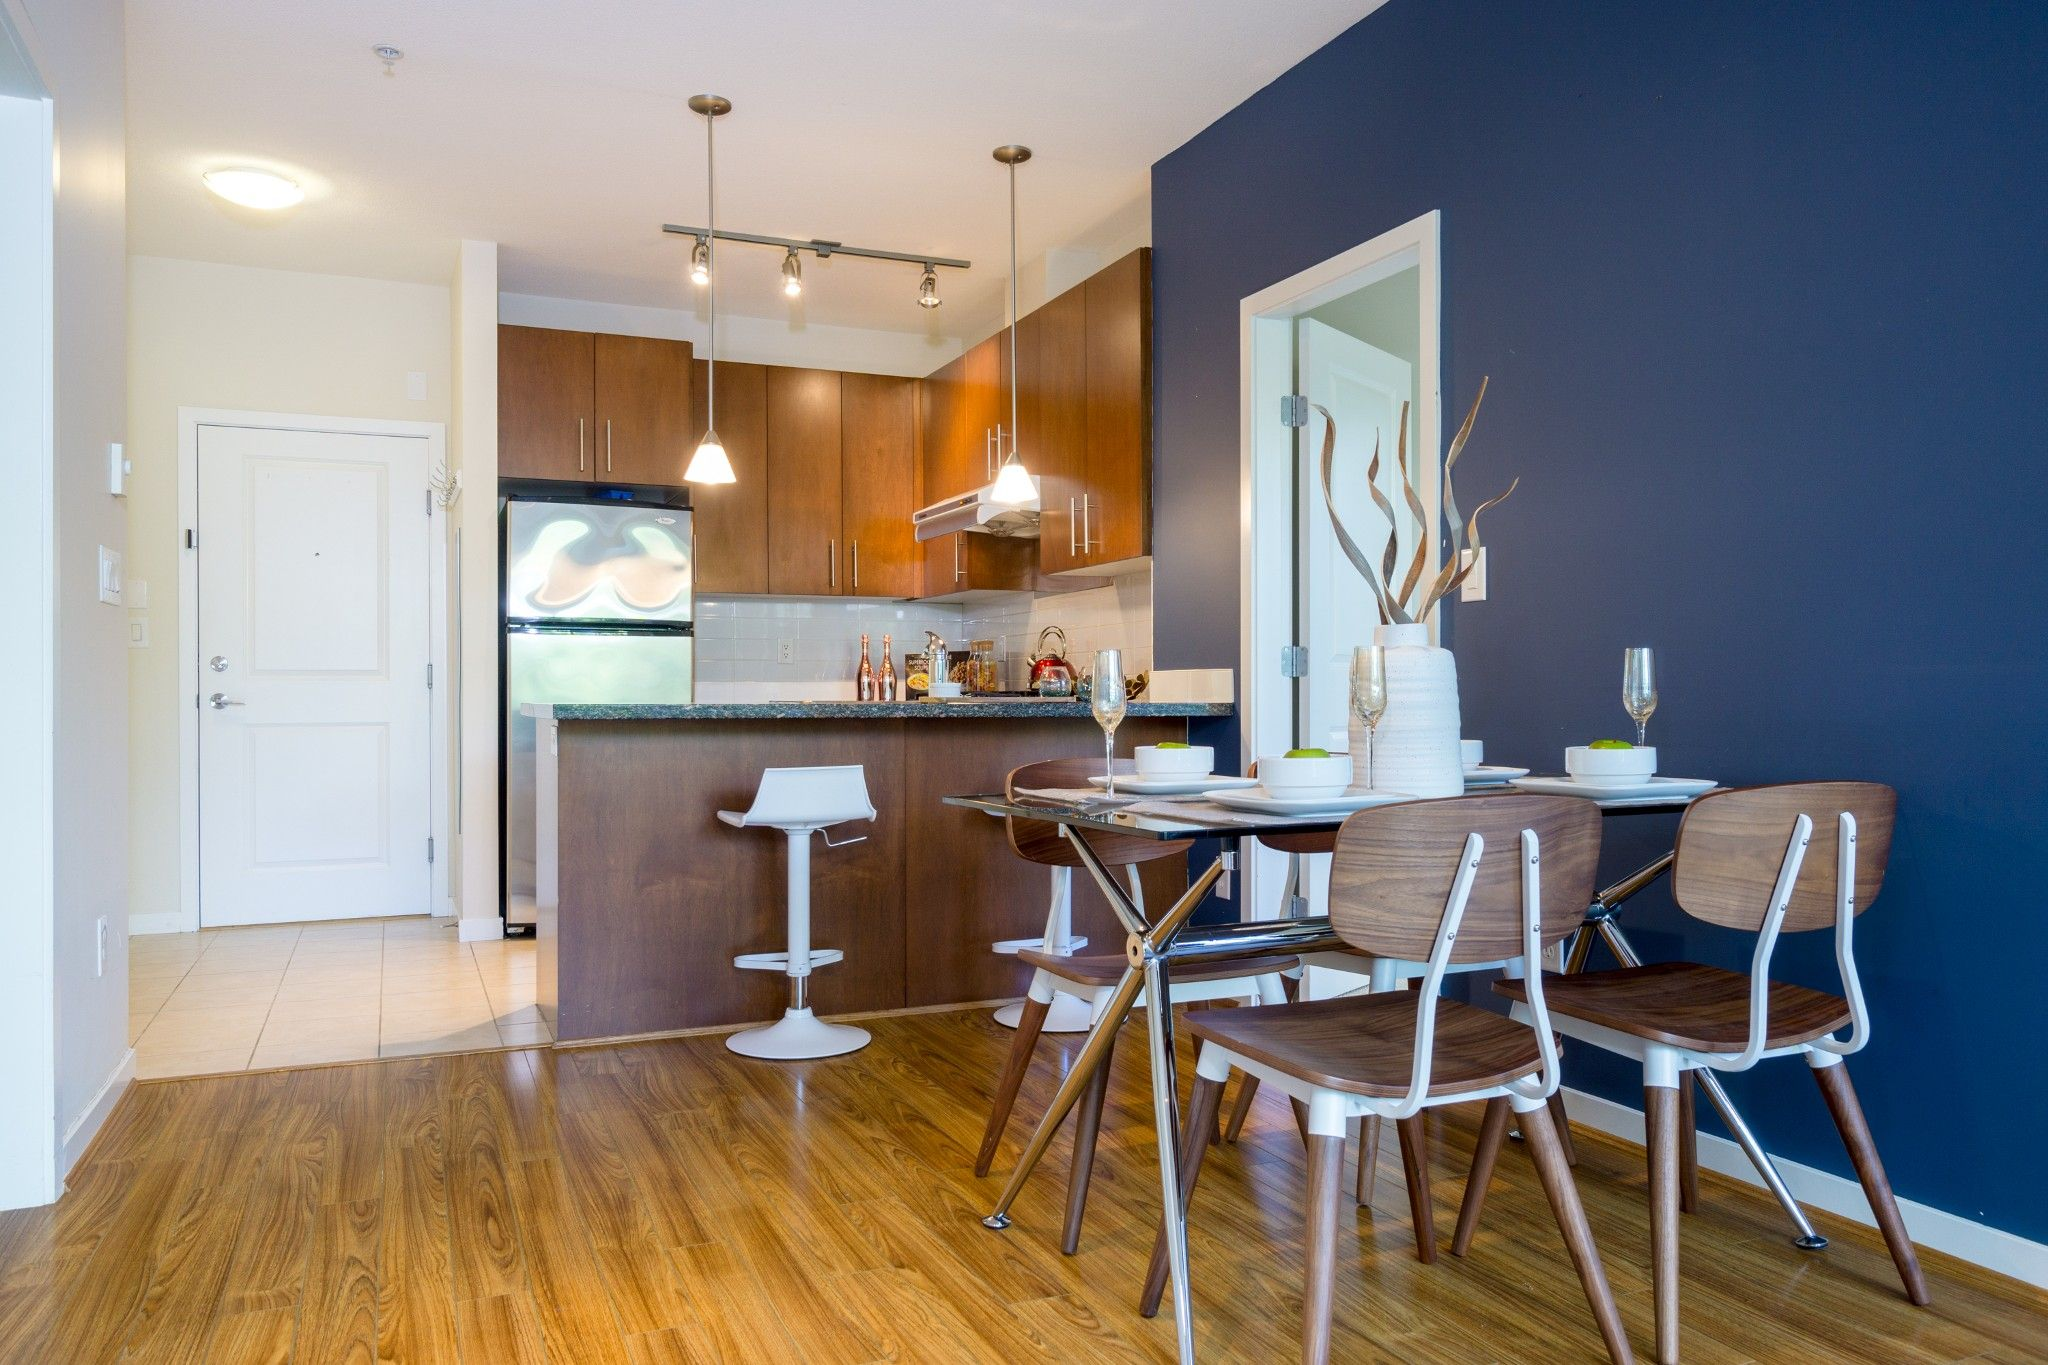 Photo 7: Photos: 208 3551 FOSTER Avenue in Vancouver: Collingwood VE Condo for sale (Vancouver East)  : MLS®# R2291555